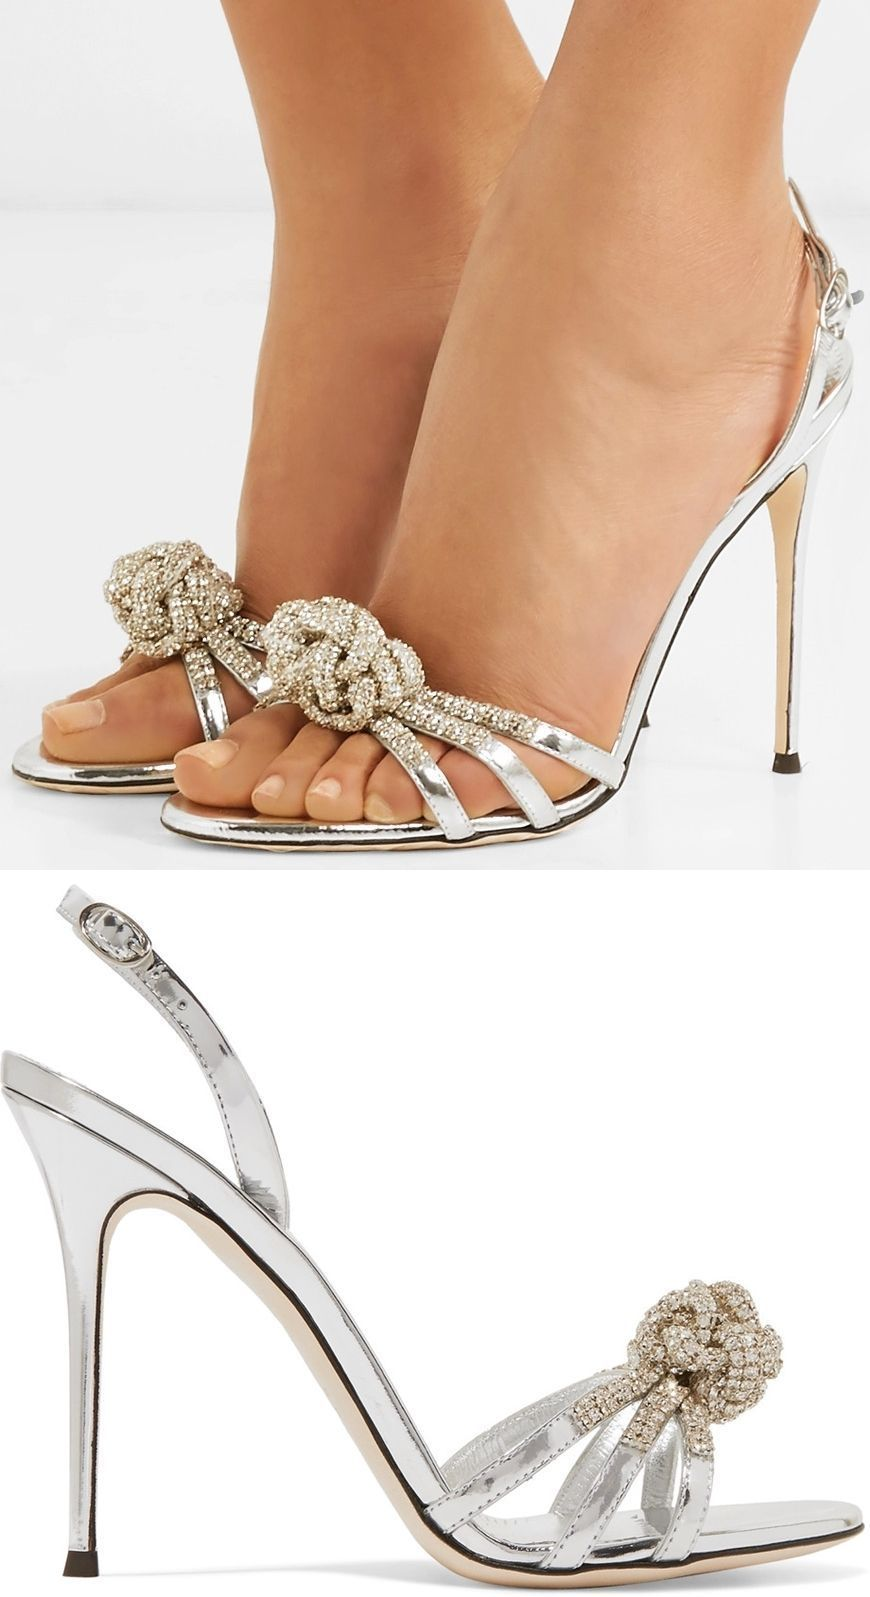 f3736a627 Finding the perfect shoe for an upcoming event can be tricky